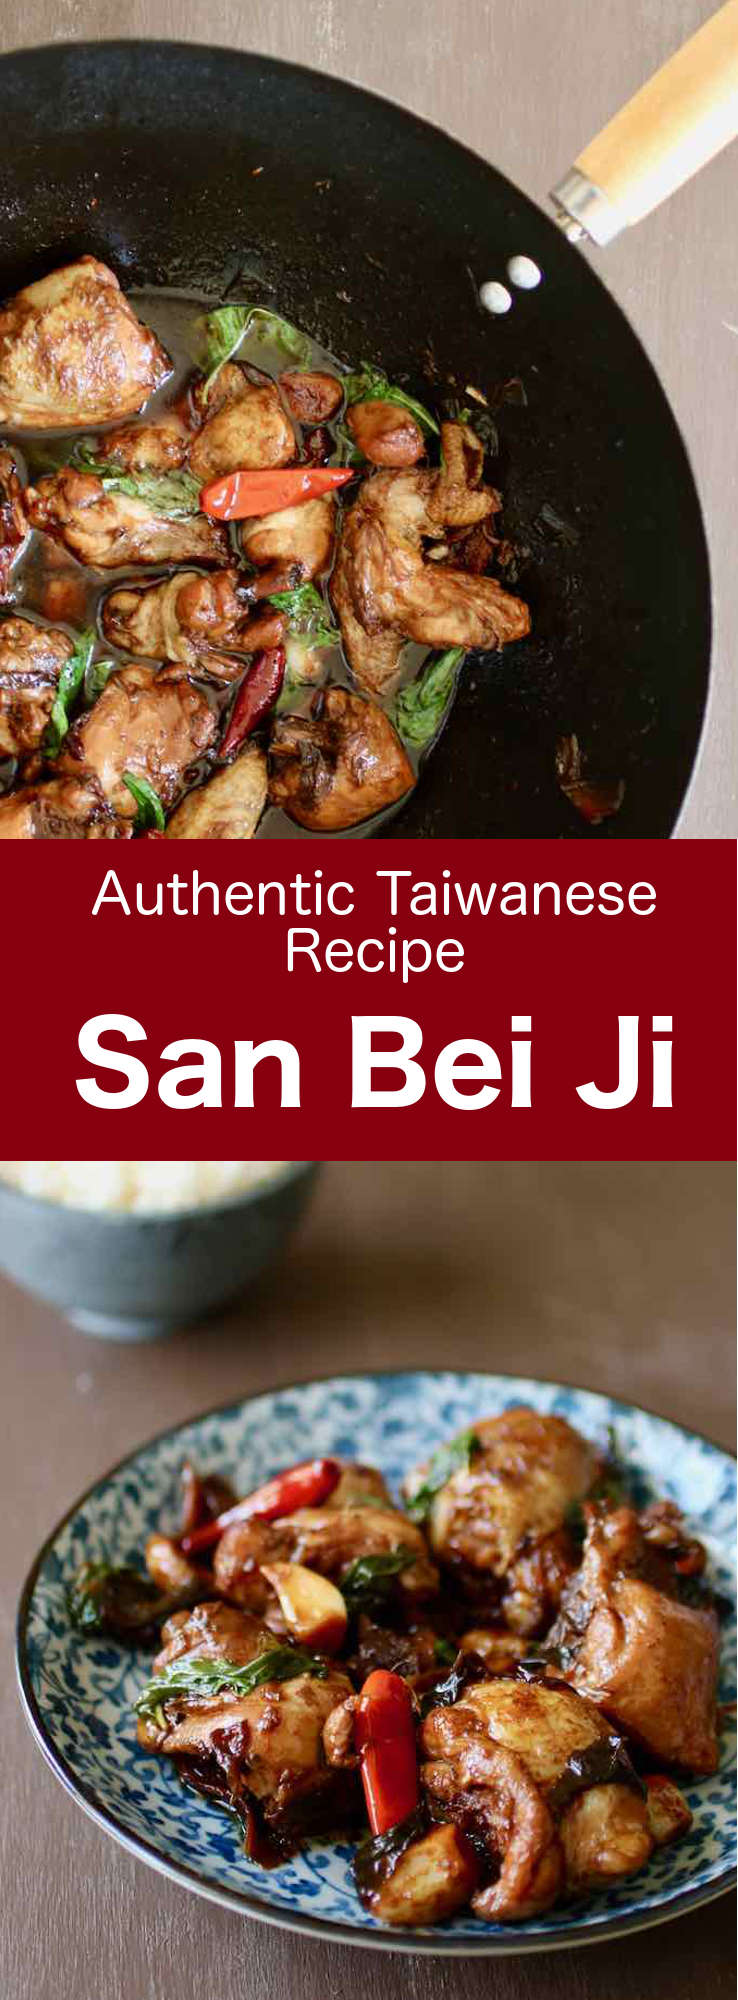 San Bei Ji is a traditional Taiwanese braised chicken recipe with a delicious thick glaze, flavored with garlic, ginger and Thai basil.